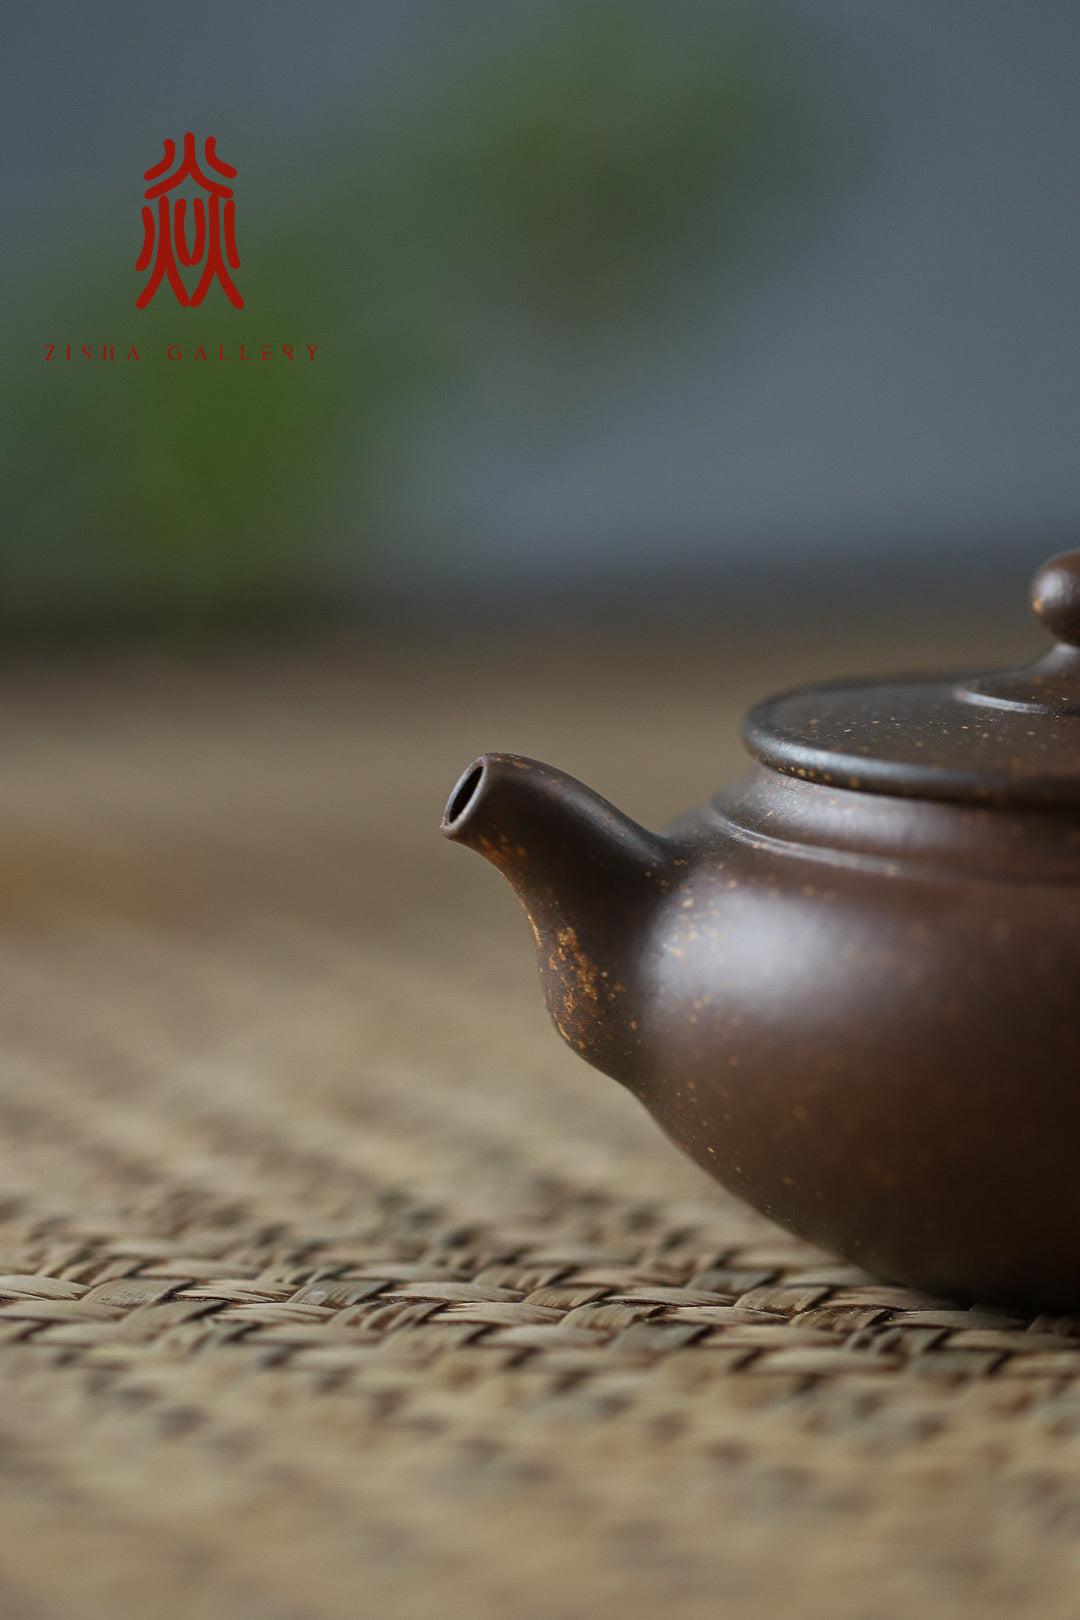 Zi Jin Hu 子衿壶 Woodfire Zini Di Cao Qing 沈叶琴 - The Phans Yixing Zisha Teapot